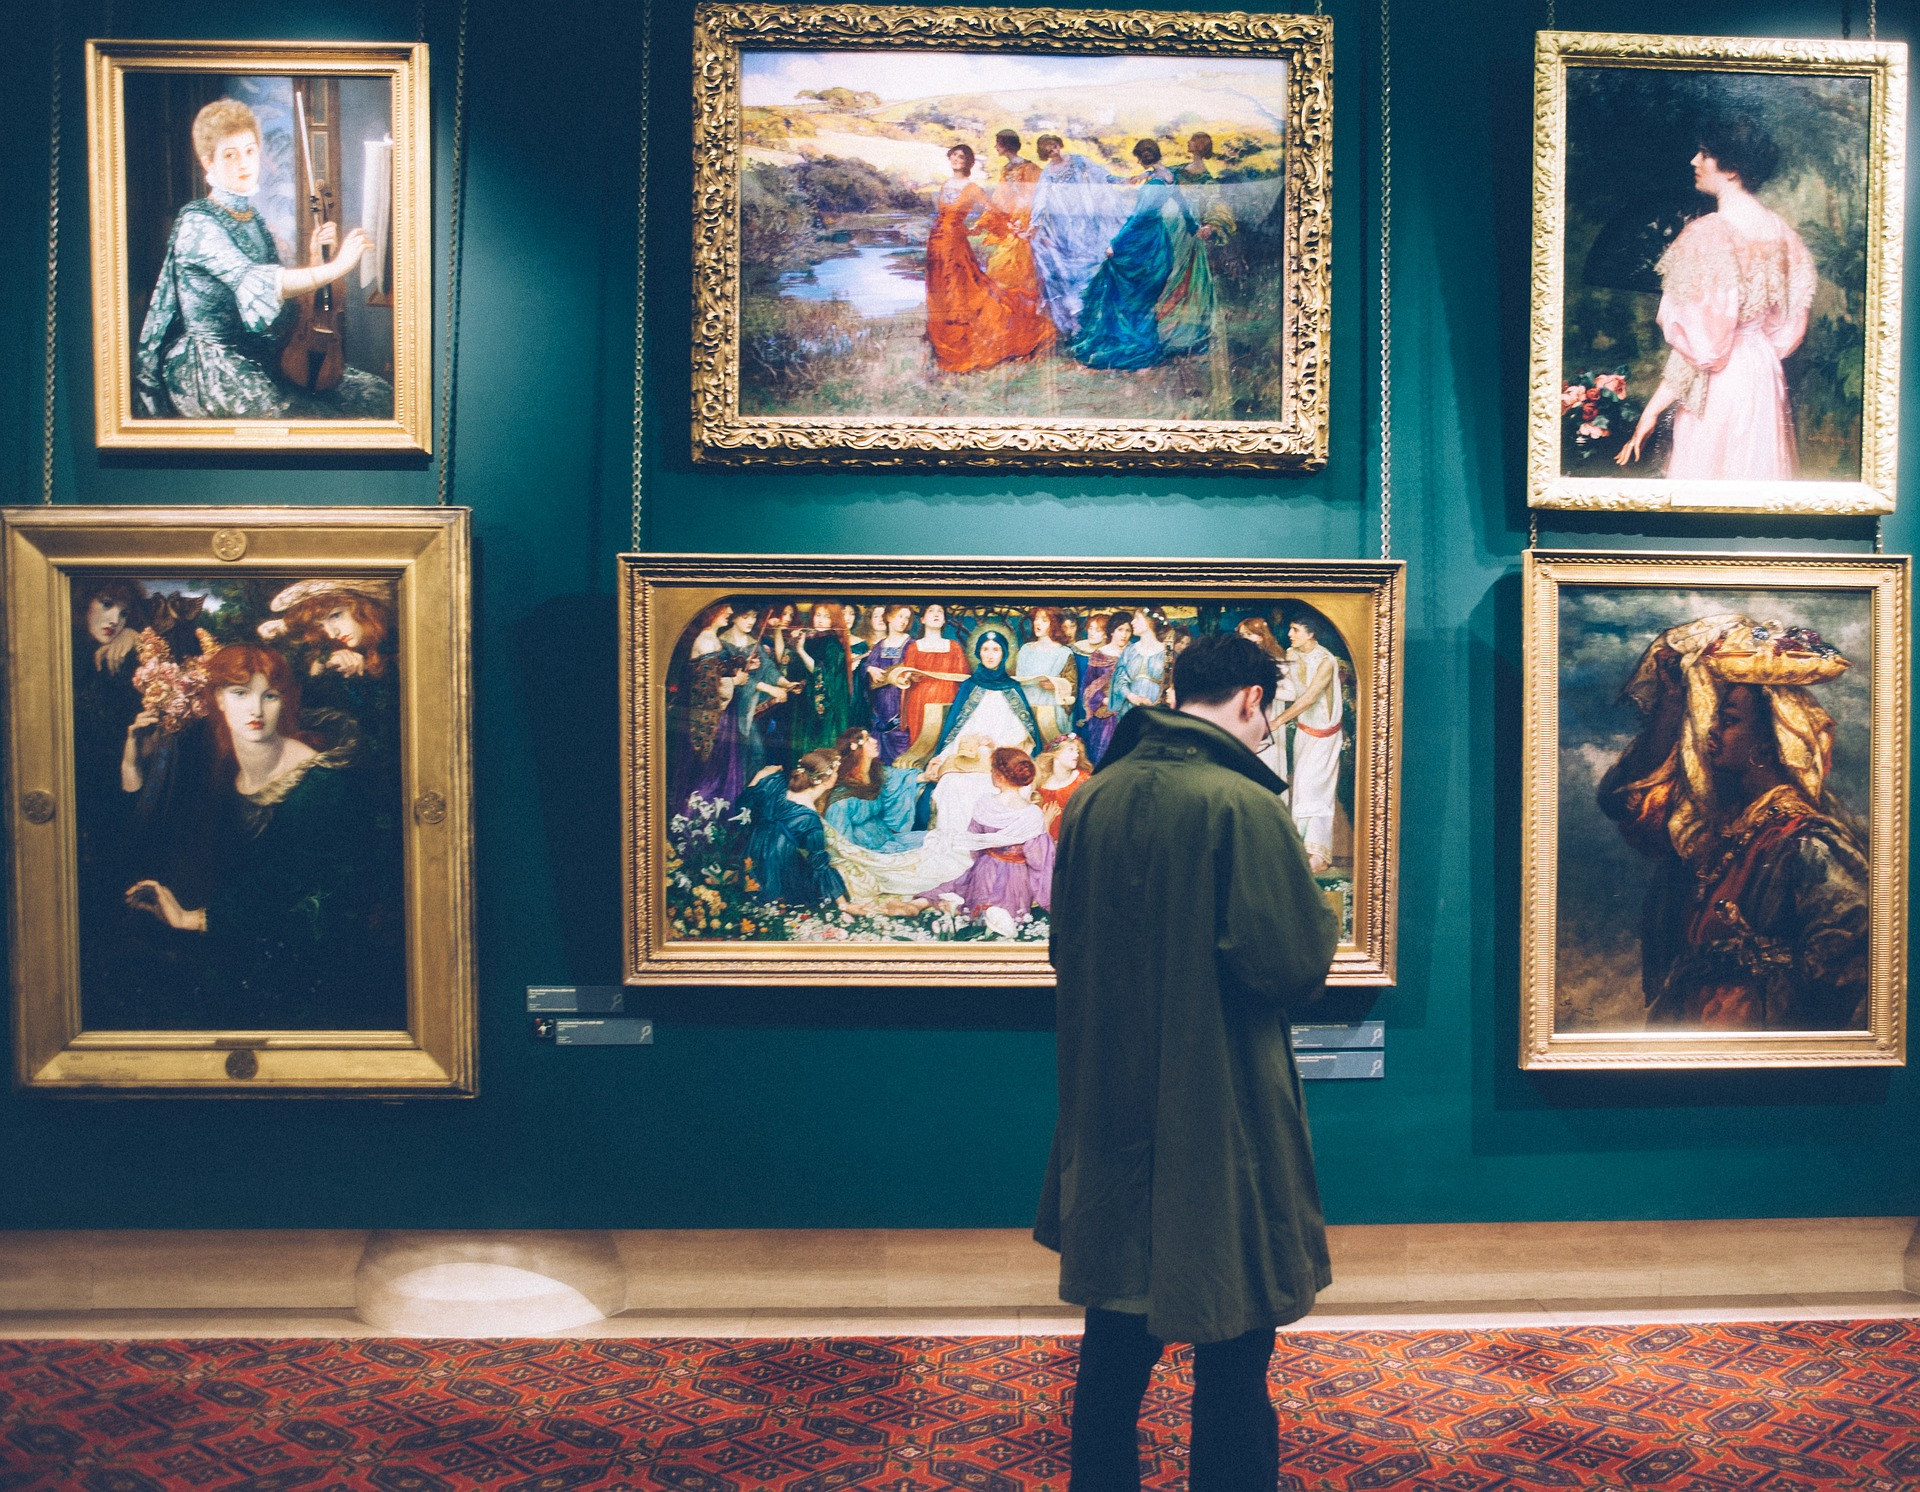 How helloguide brings chatbots to museums